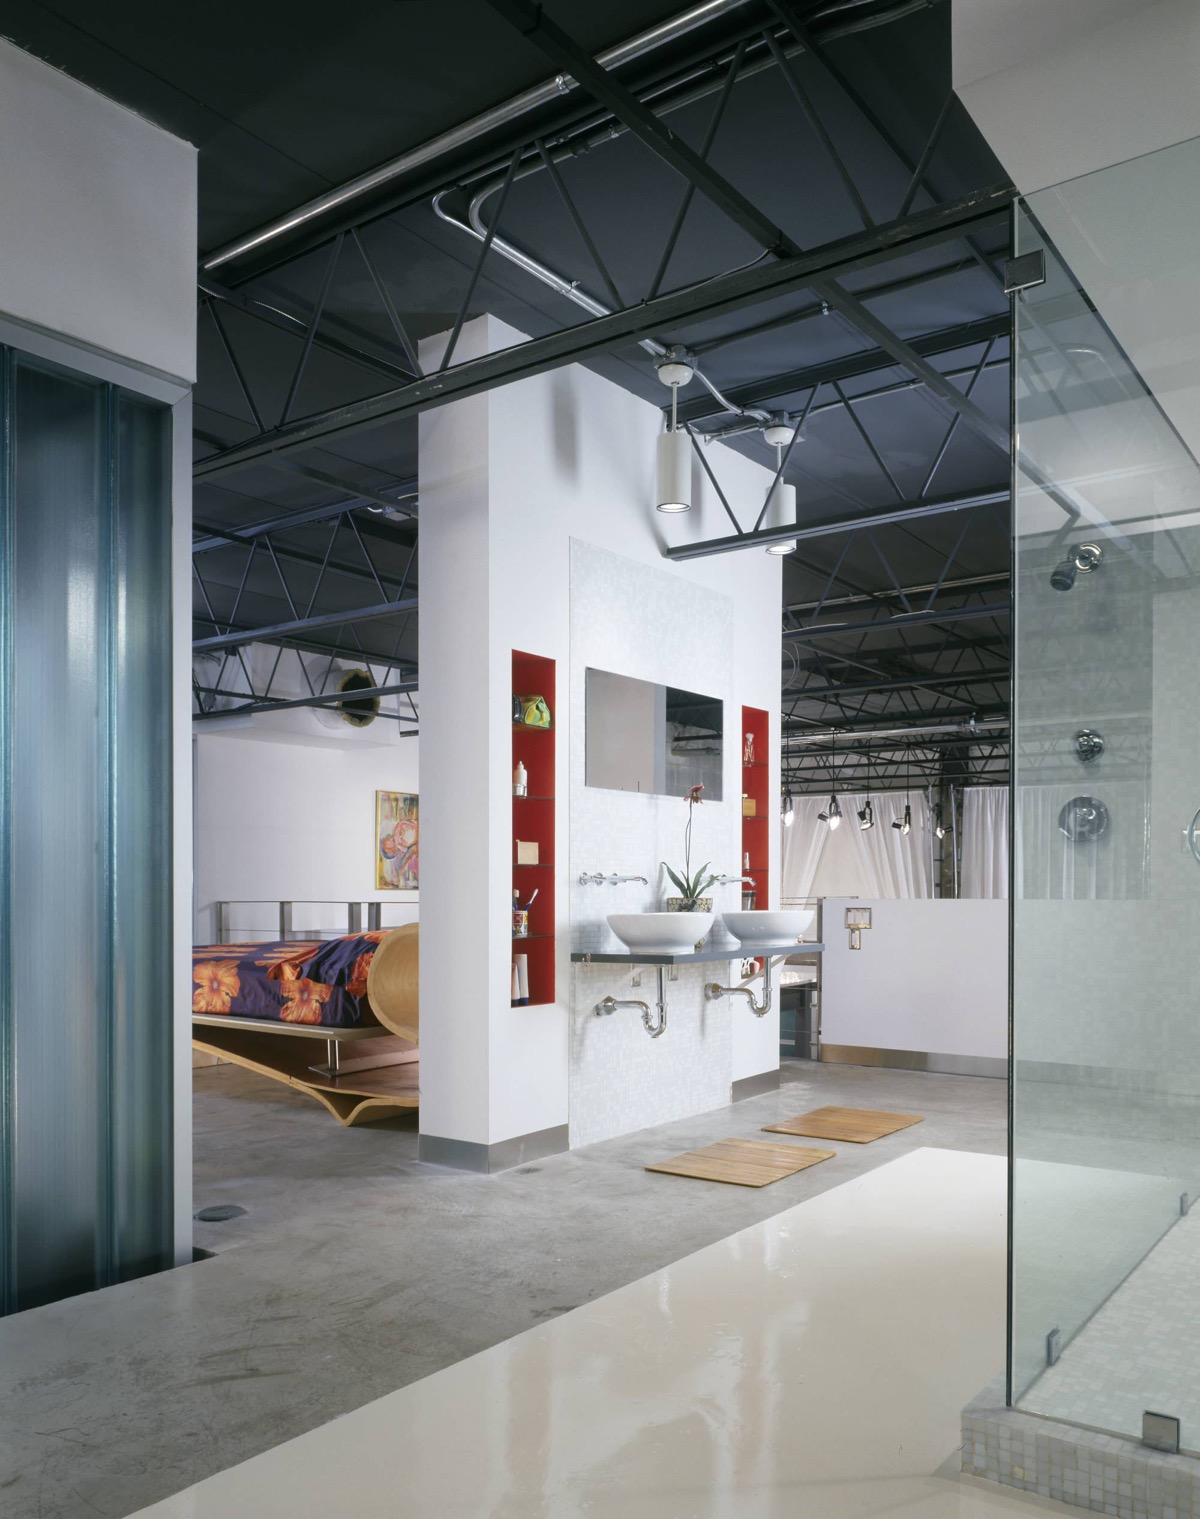 51 Industrial Style Bathrooms Plus Ideas & Accessories You Can Copy From Them images 43